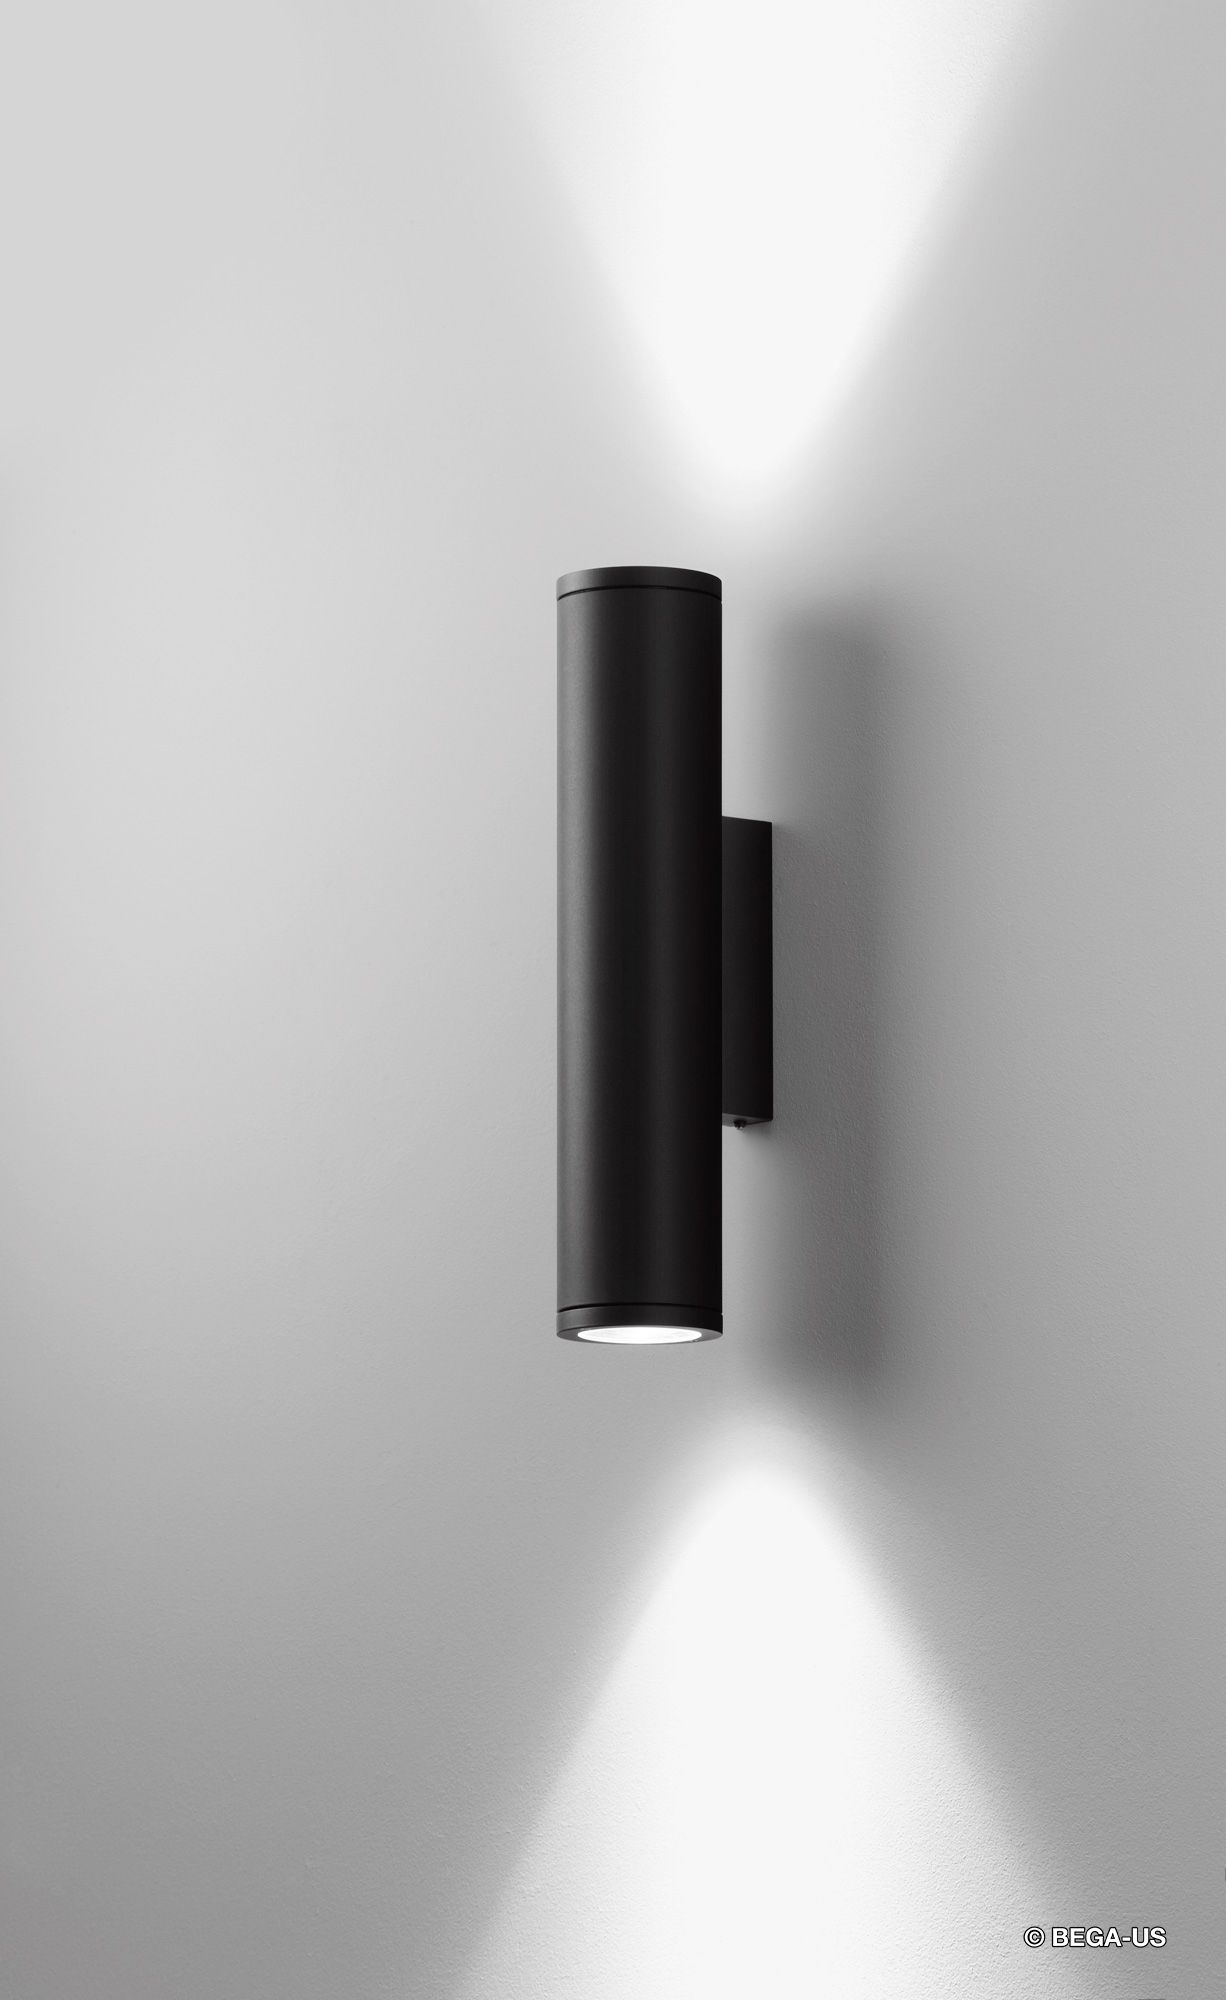 Surface Wall Dual Narrow Beam Lighting Outdoor Designed To Provide Dual Direction Lighting Effects For Interior And Ext Exterior Lighting Wall Wall Fixtures